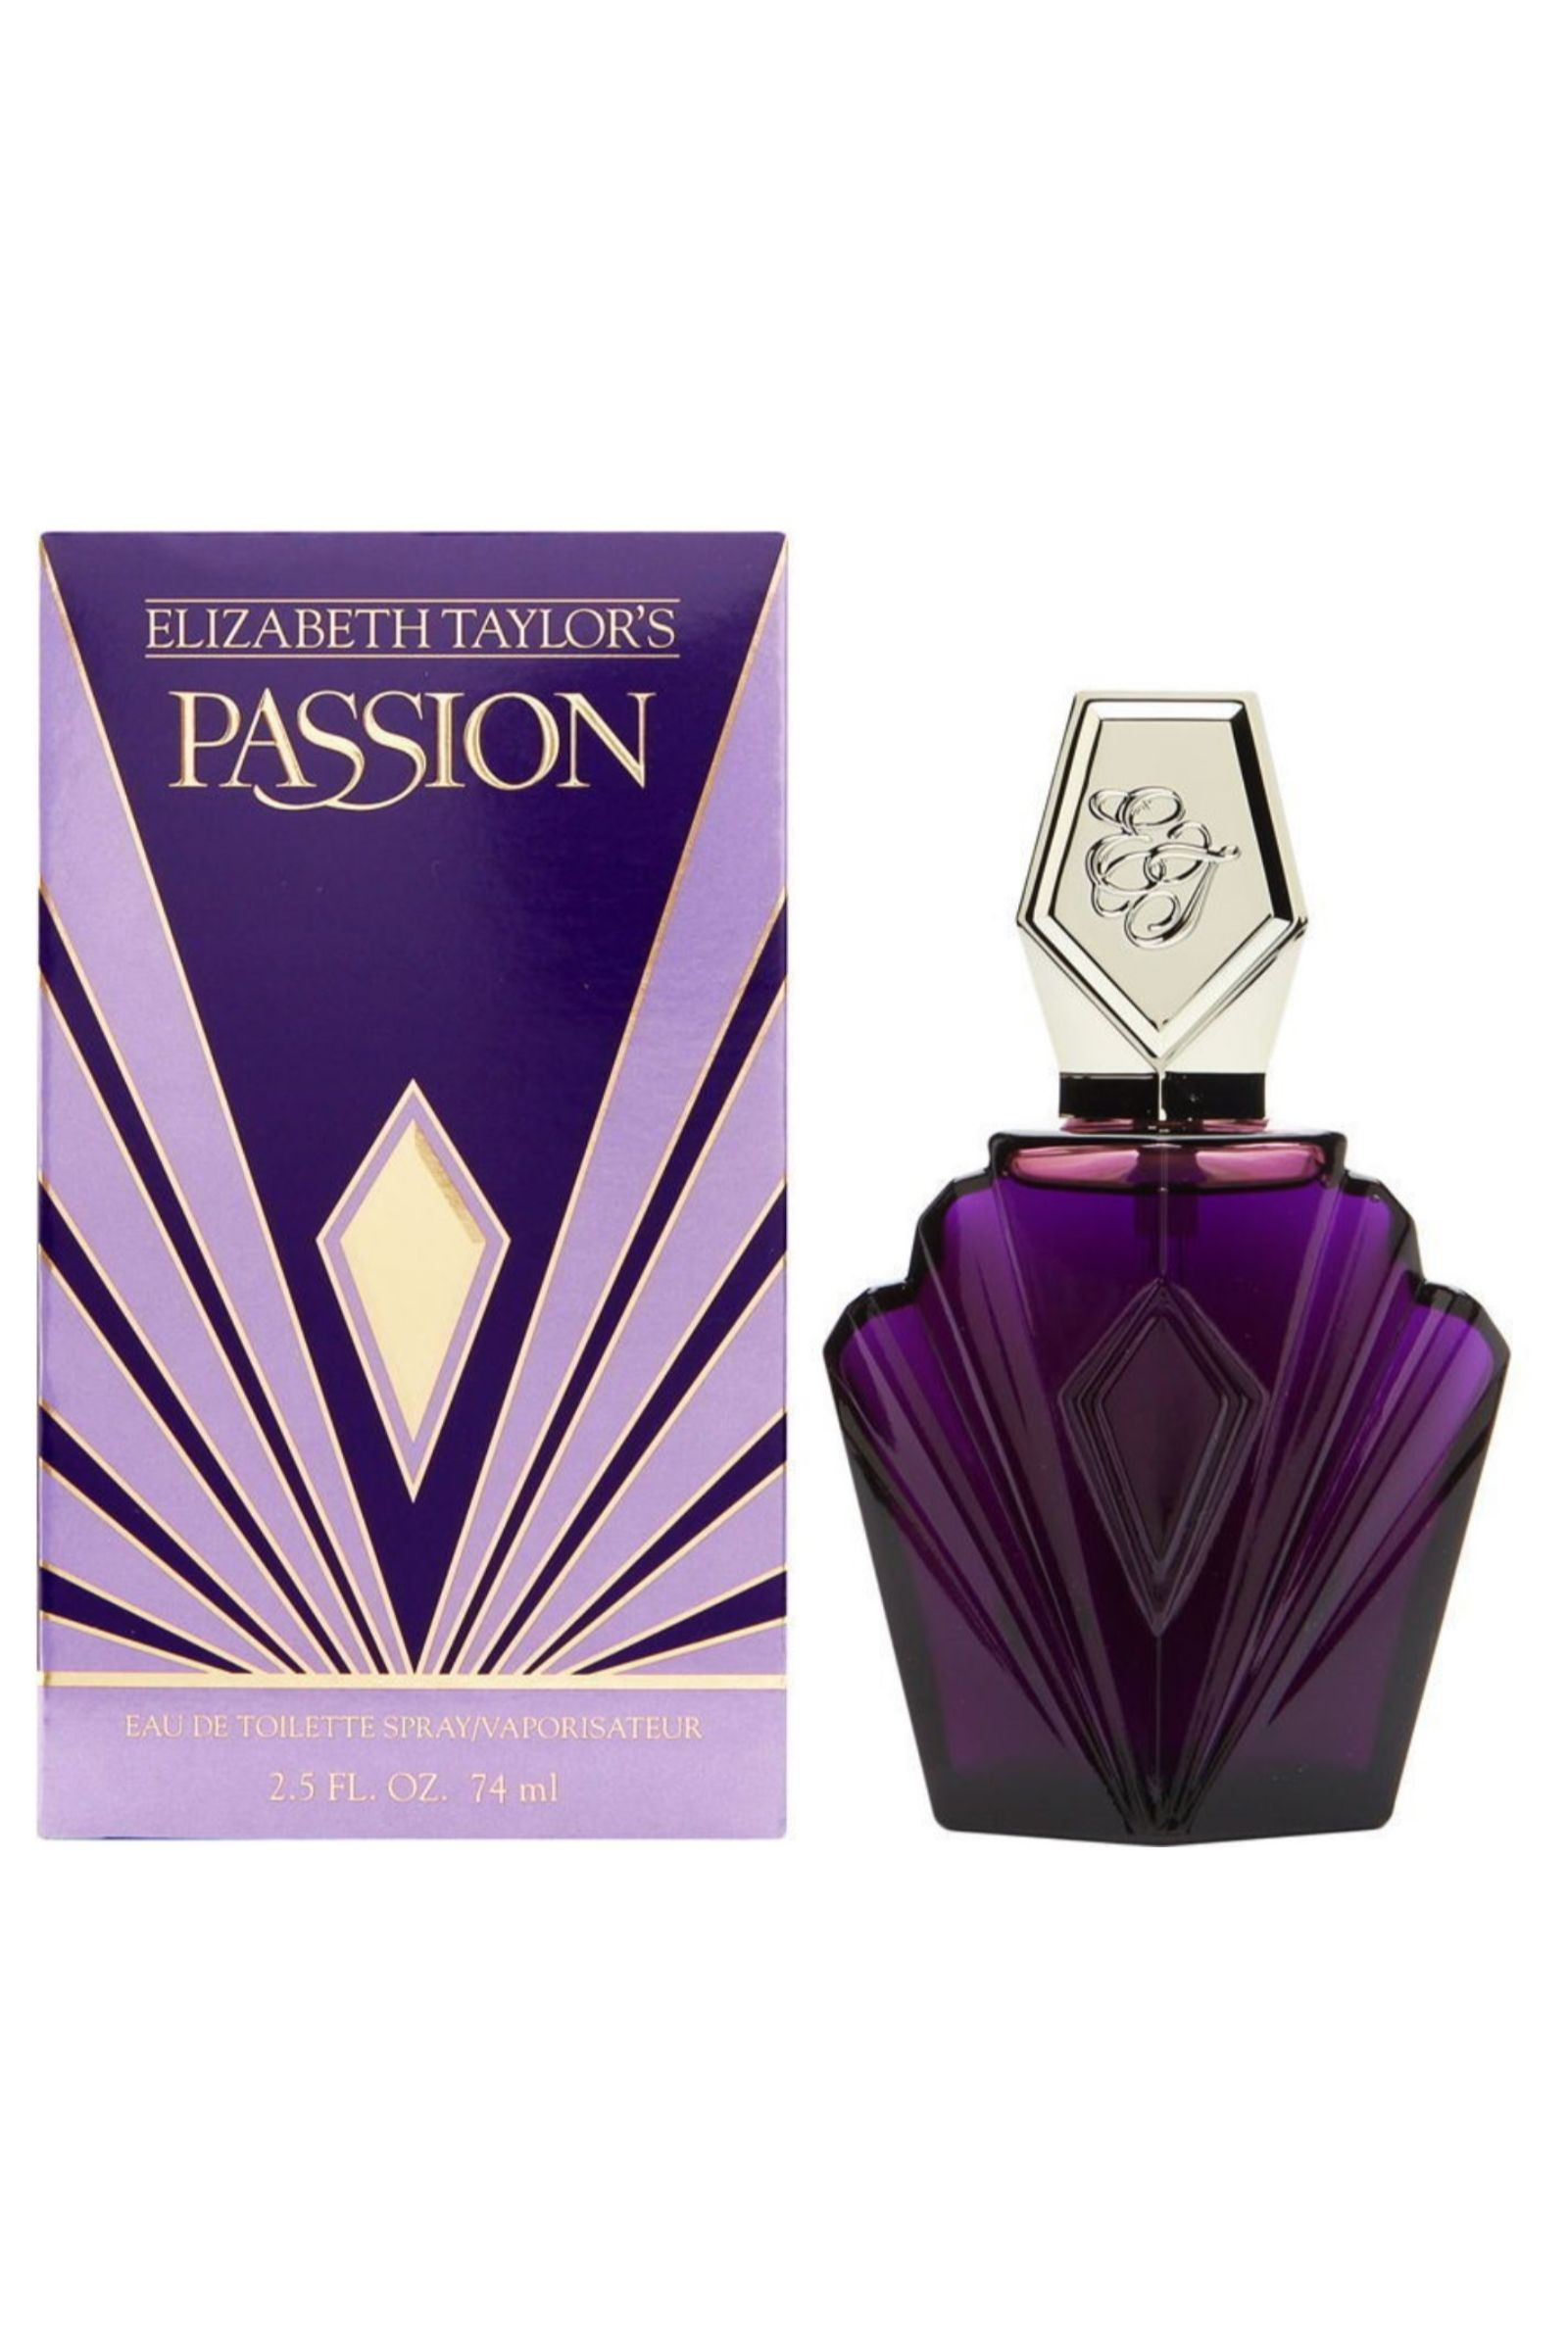 Detalles de Elizabeth Taylor Passion EDT Eau de Toilette Spray 74ml Mujer Fragancia